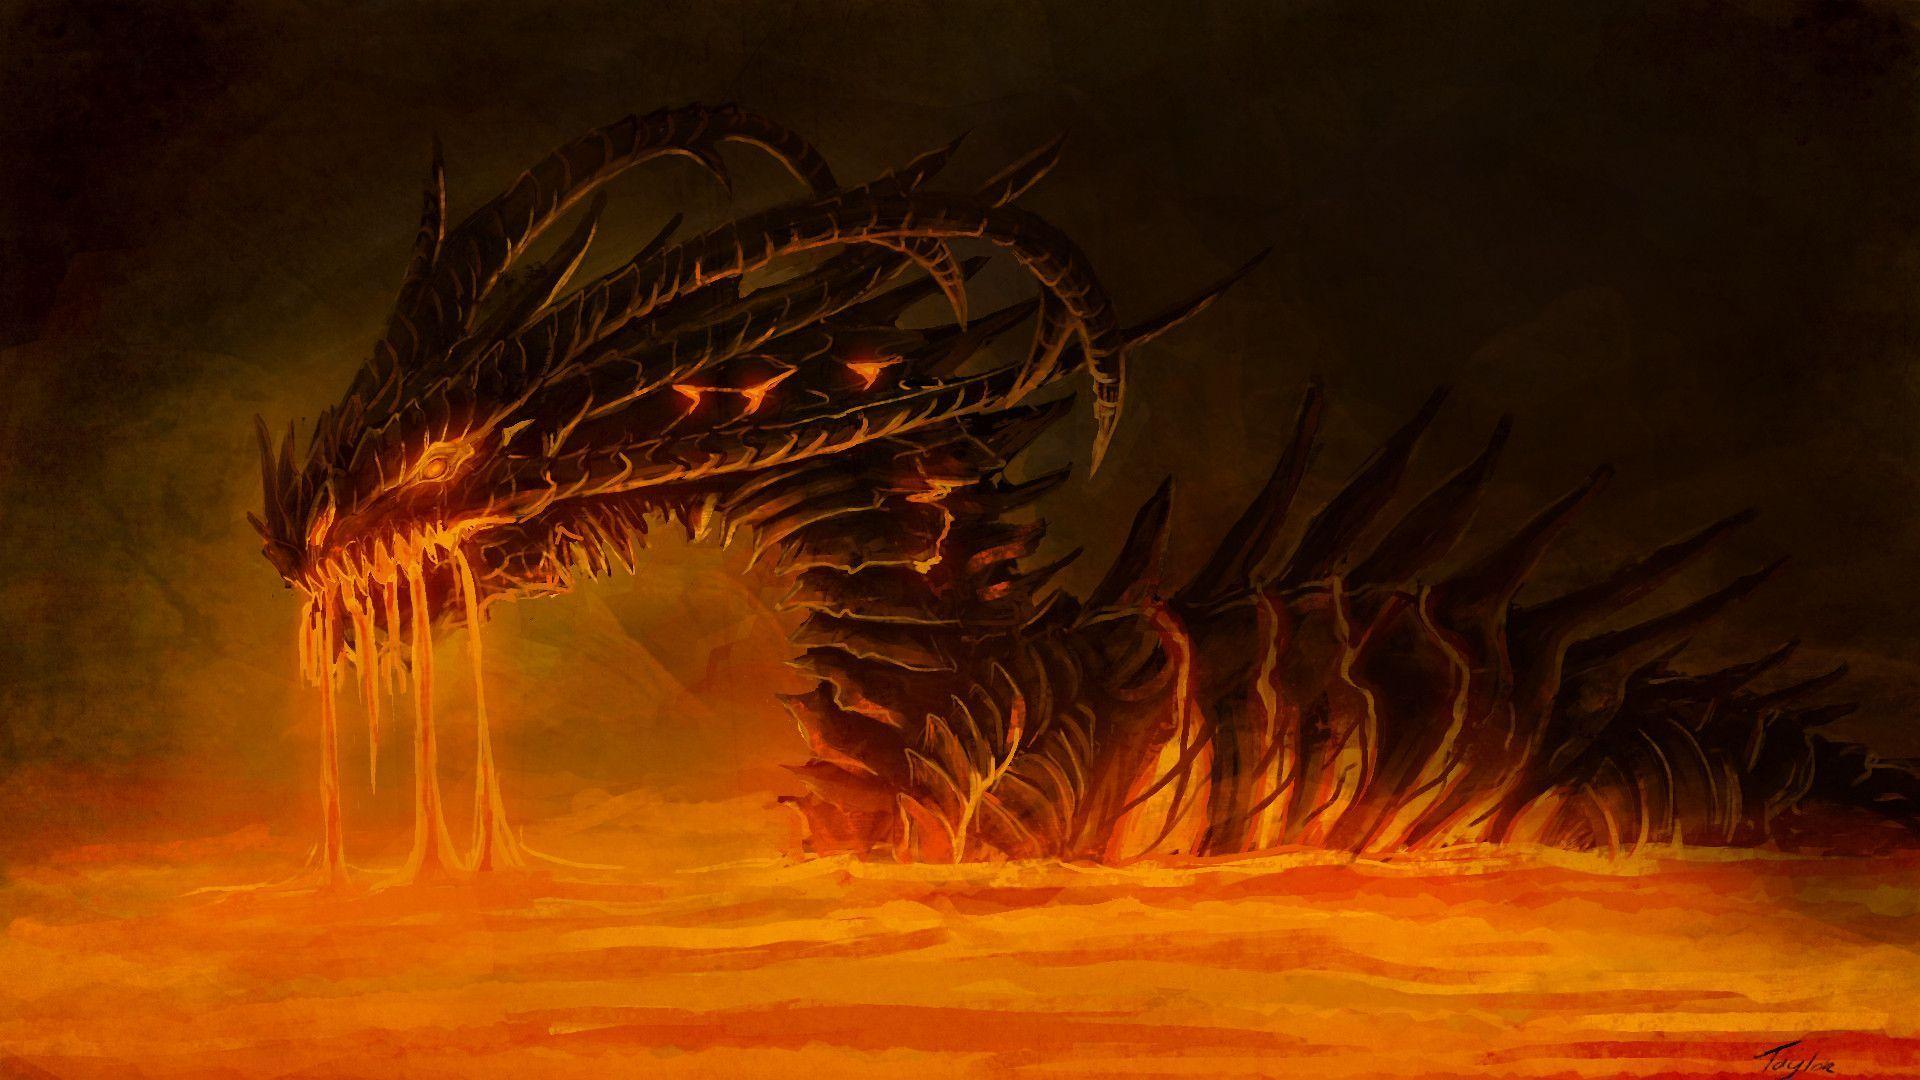 Fire dragon wallpapers wallpaper cave - Dragon backgrounds ...